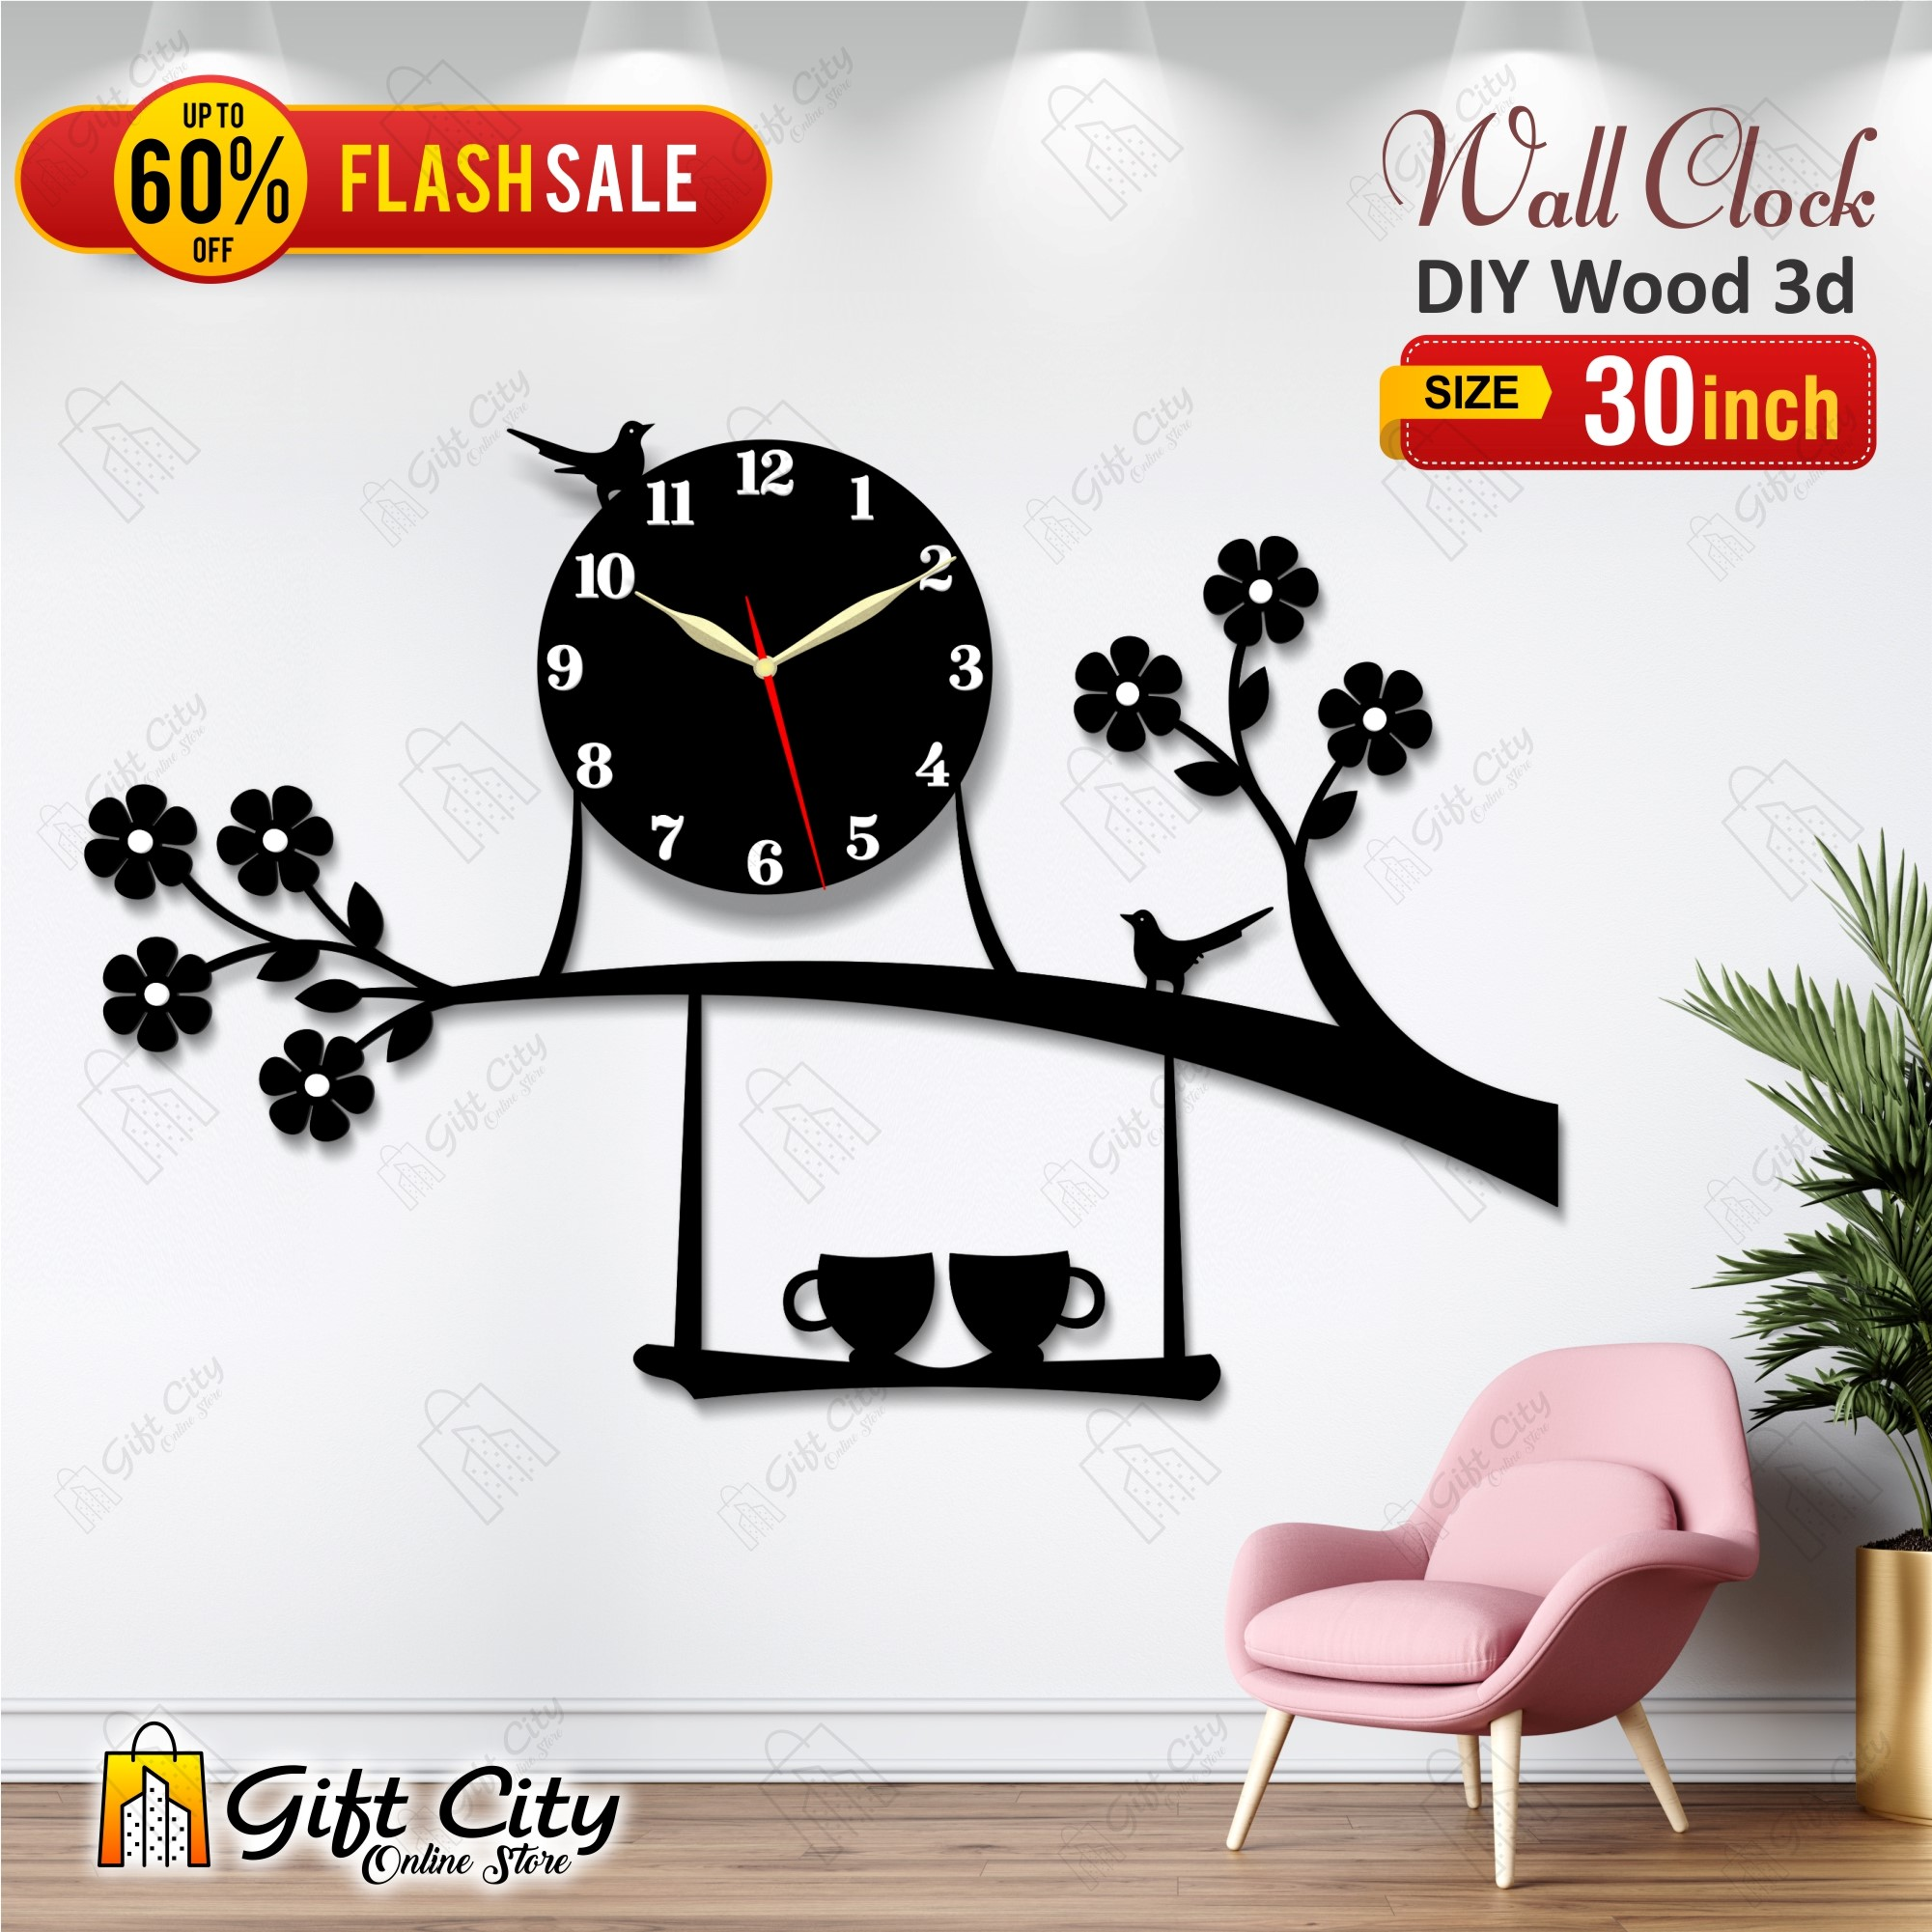 Bird on Tree with Coffee Cup Wooden Wall Clock for Home and Offices, 3D Design Self Adhesive - GIFT City